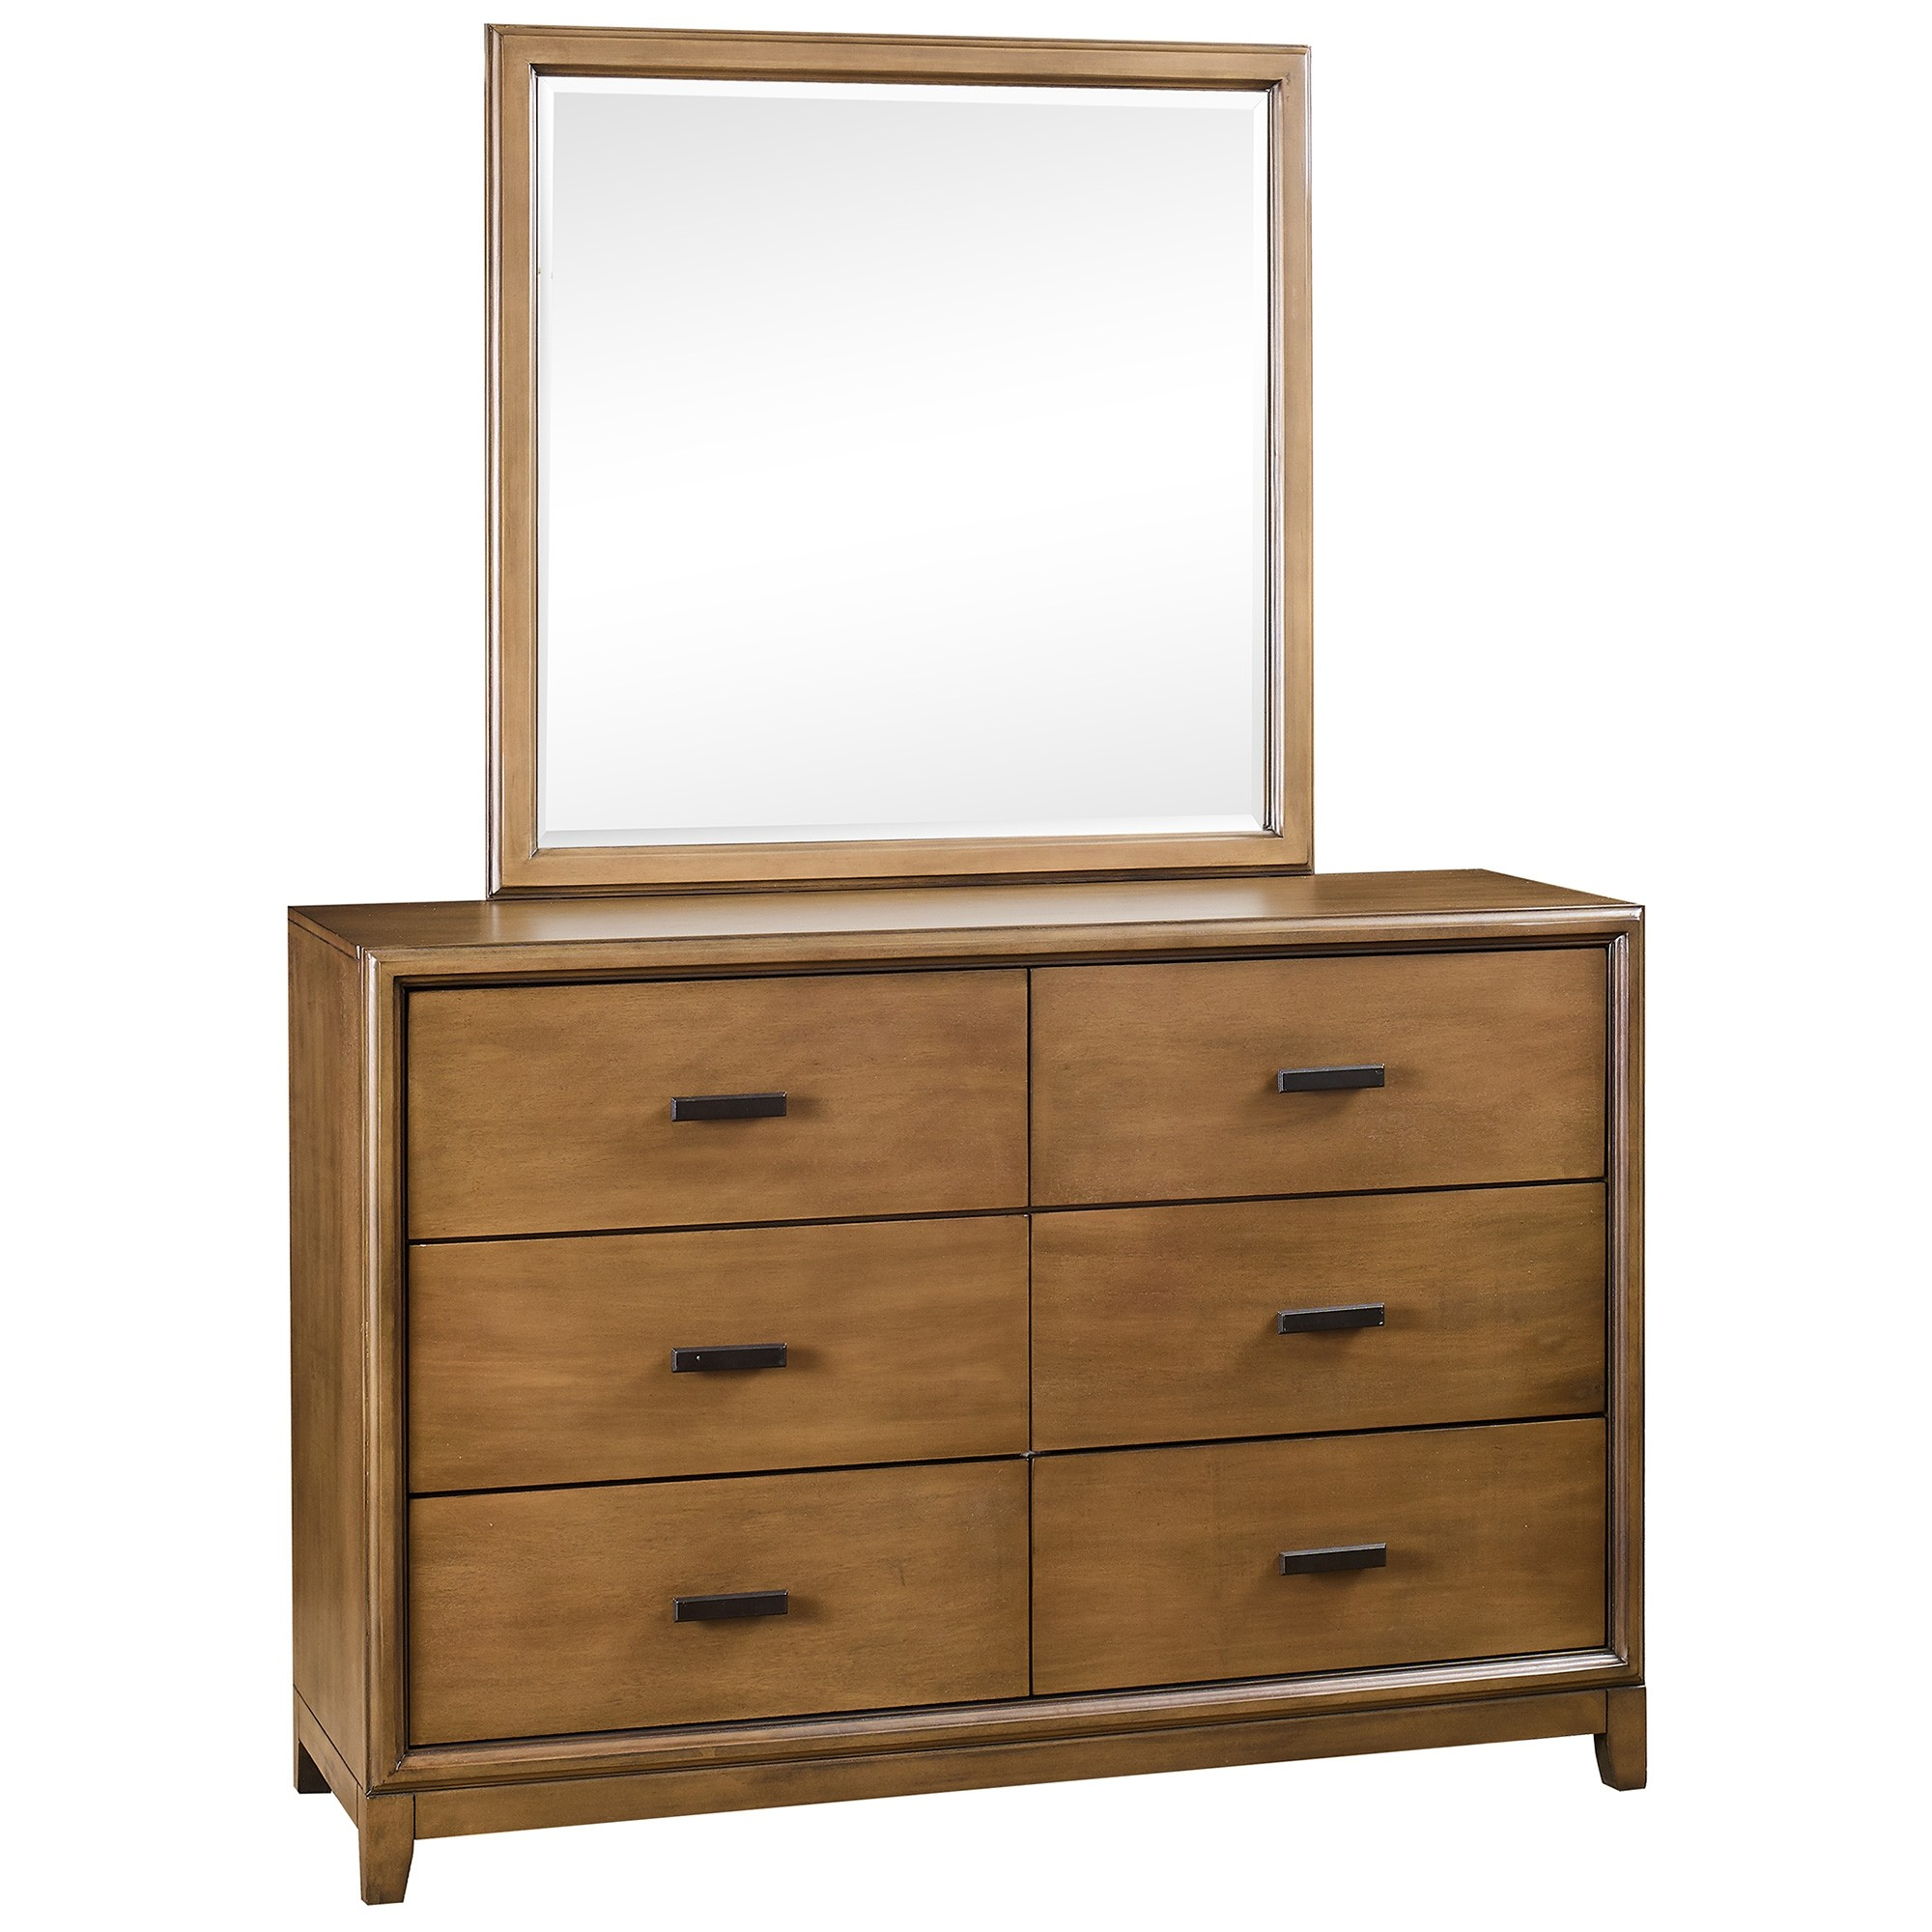 Mornington Poplar Timber 6 Drawer Dresser